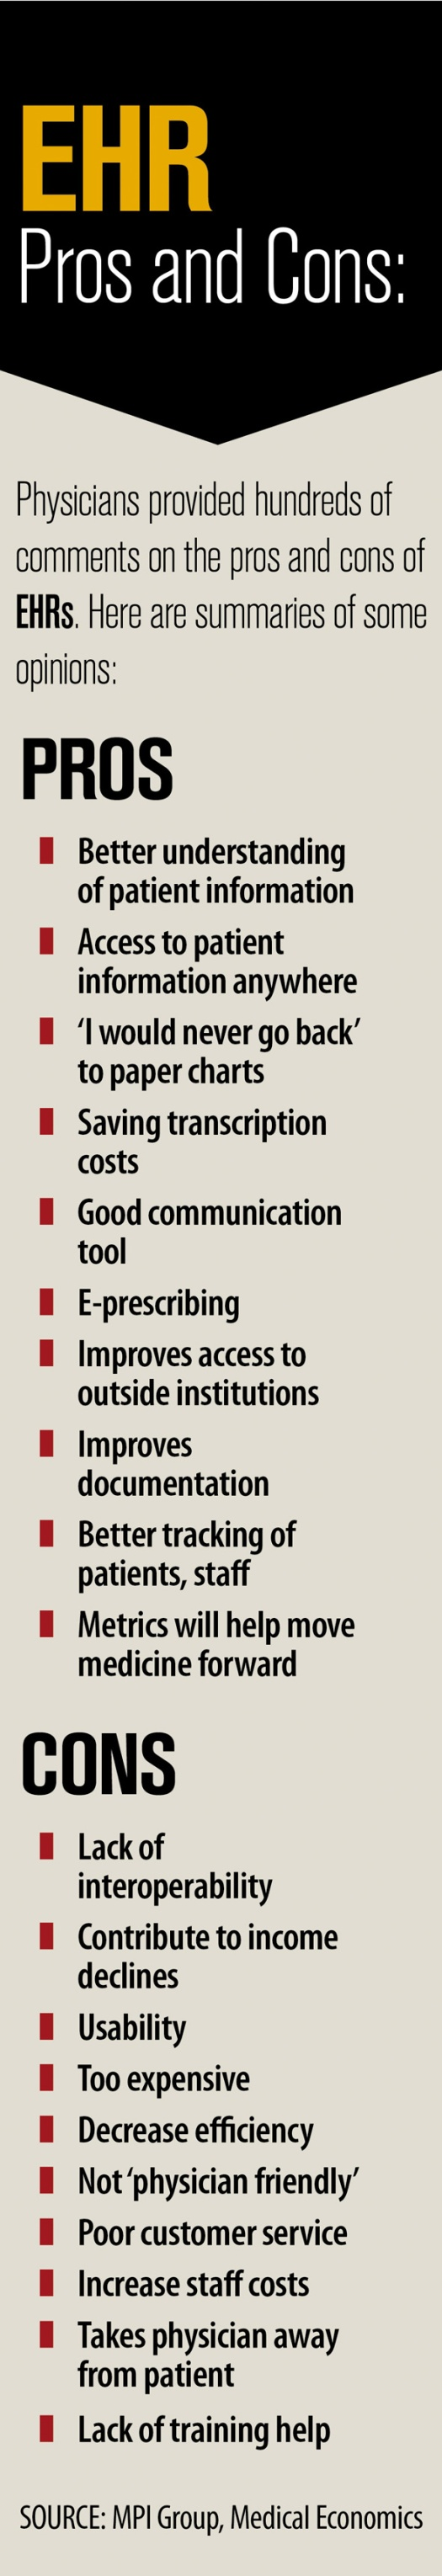 Measuring EHR pain points: High cost, poor functionality outweigh benefits, ease of access